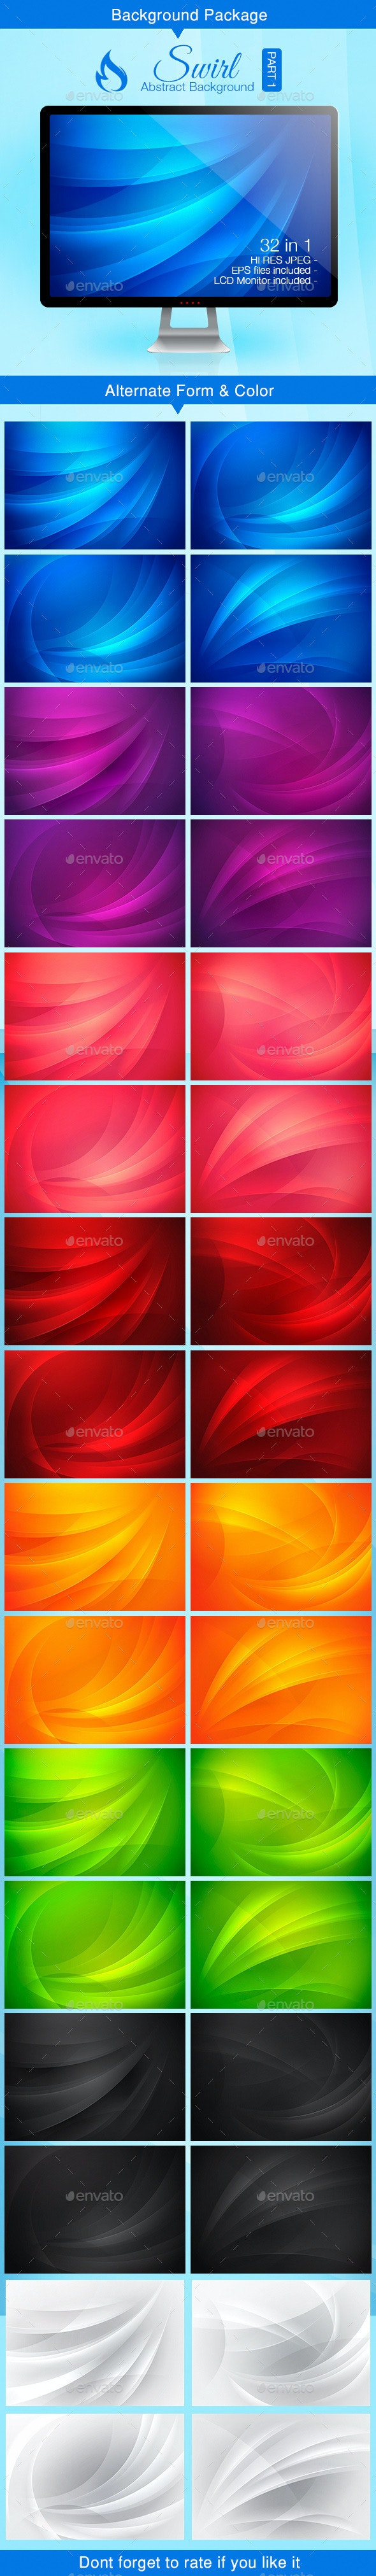 Swirl Abstract Background - Part 1 - Backgrounds Decorative